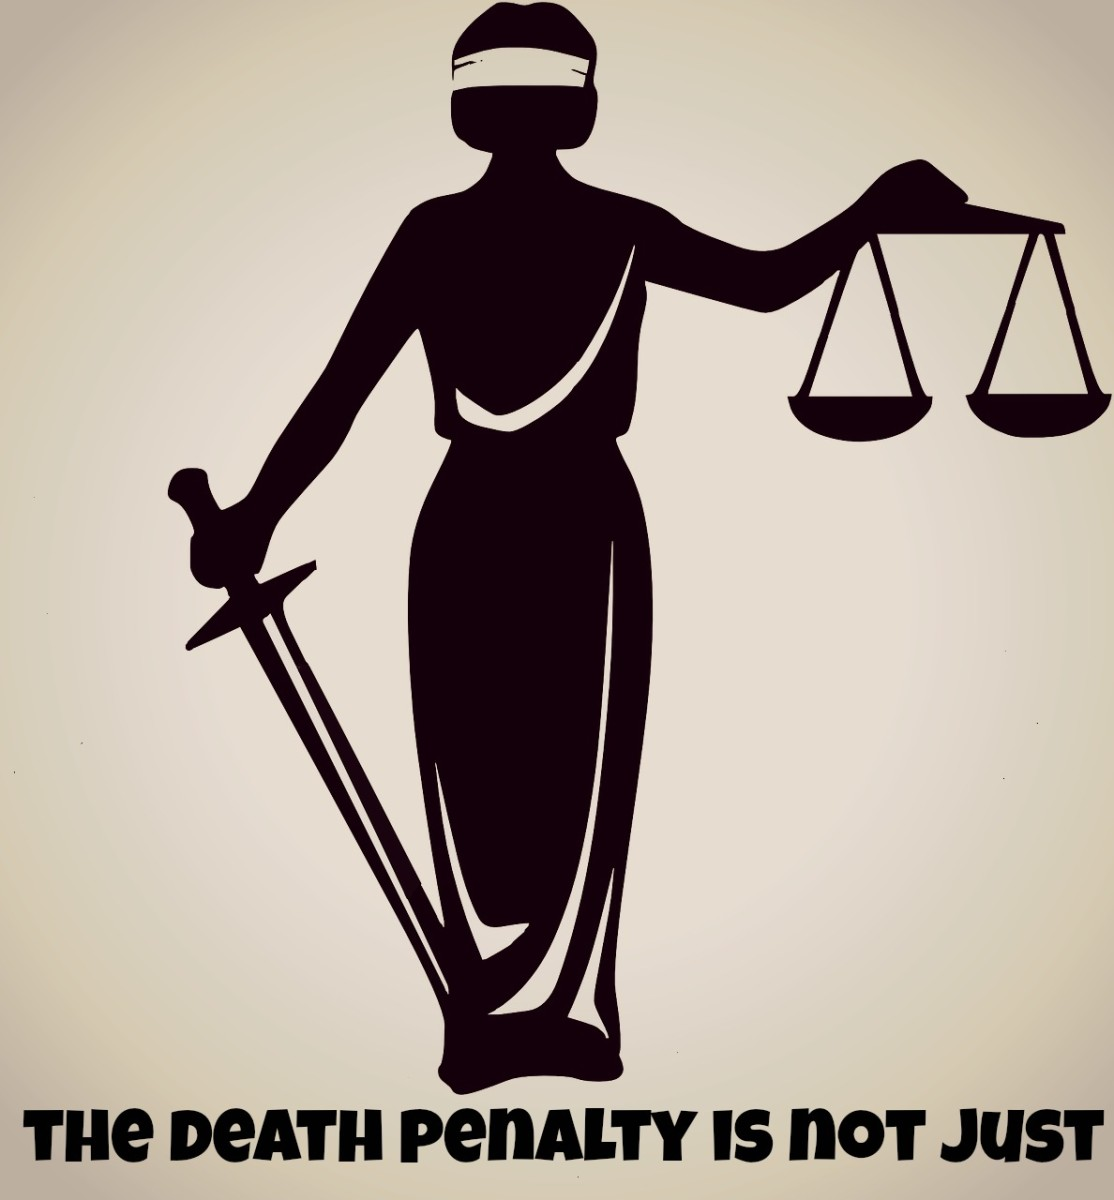 the immorality of the death penalty 5 pros and cons of capital punishment article by varsha pai, september 23, 2013 sparking many debates, capital punishment or death penalty seems to remain an evergreen controversial topic.